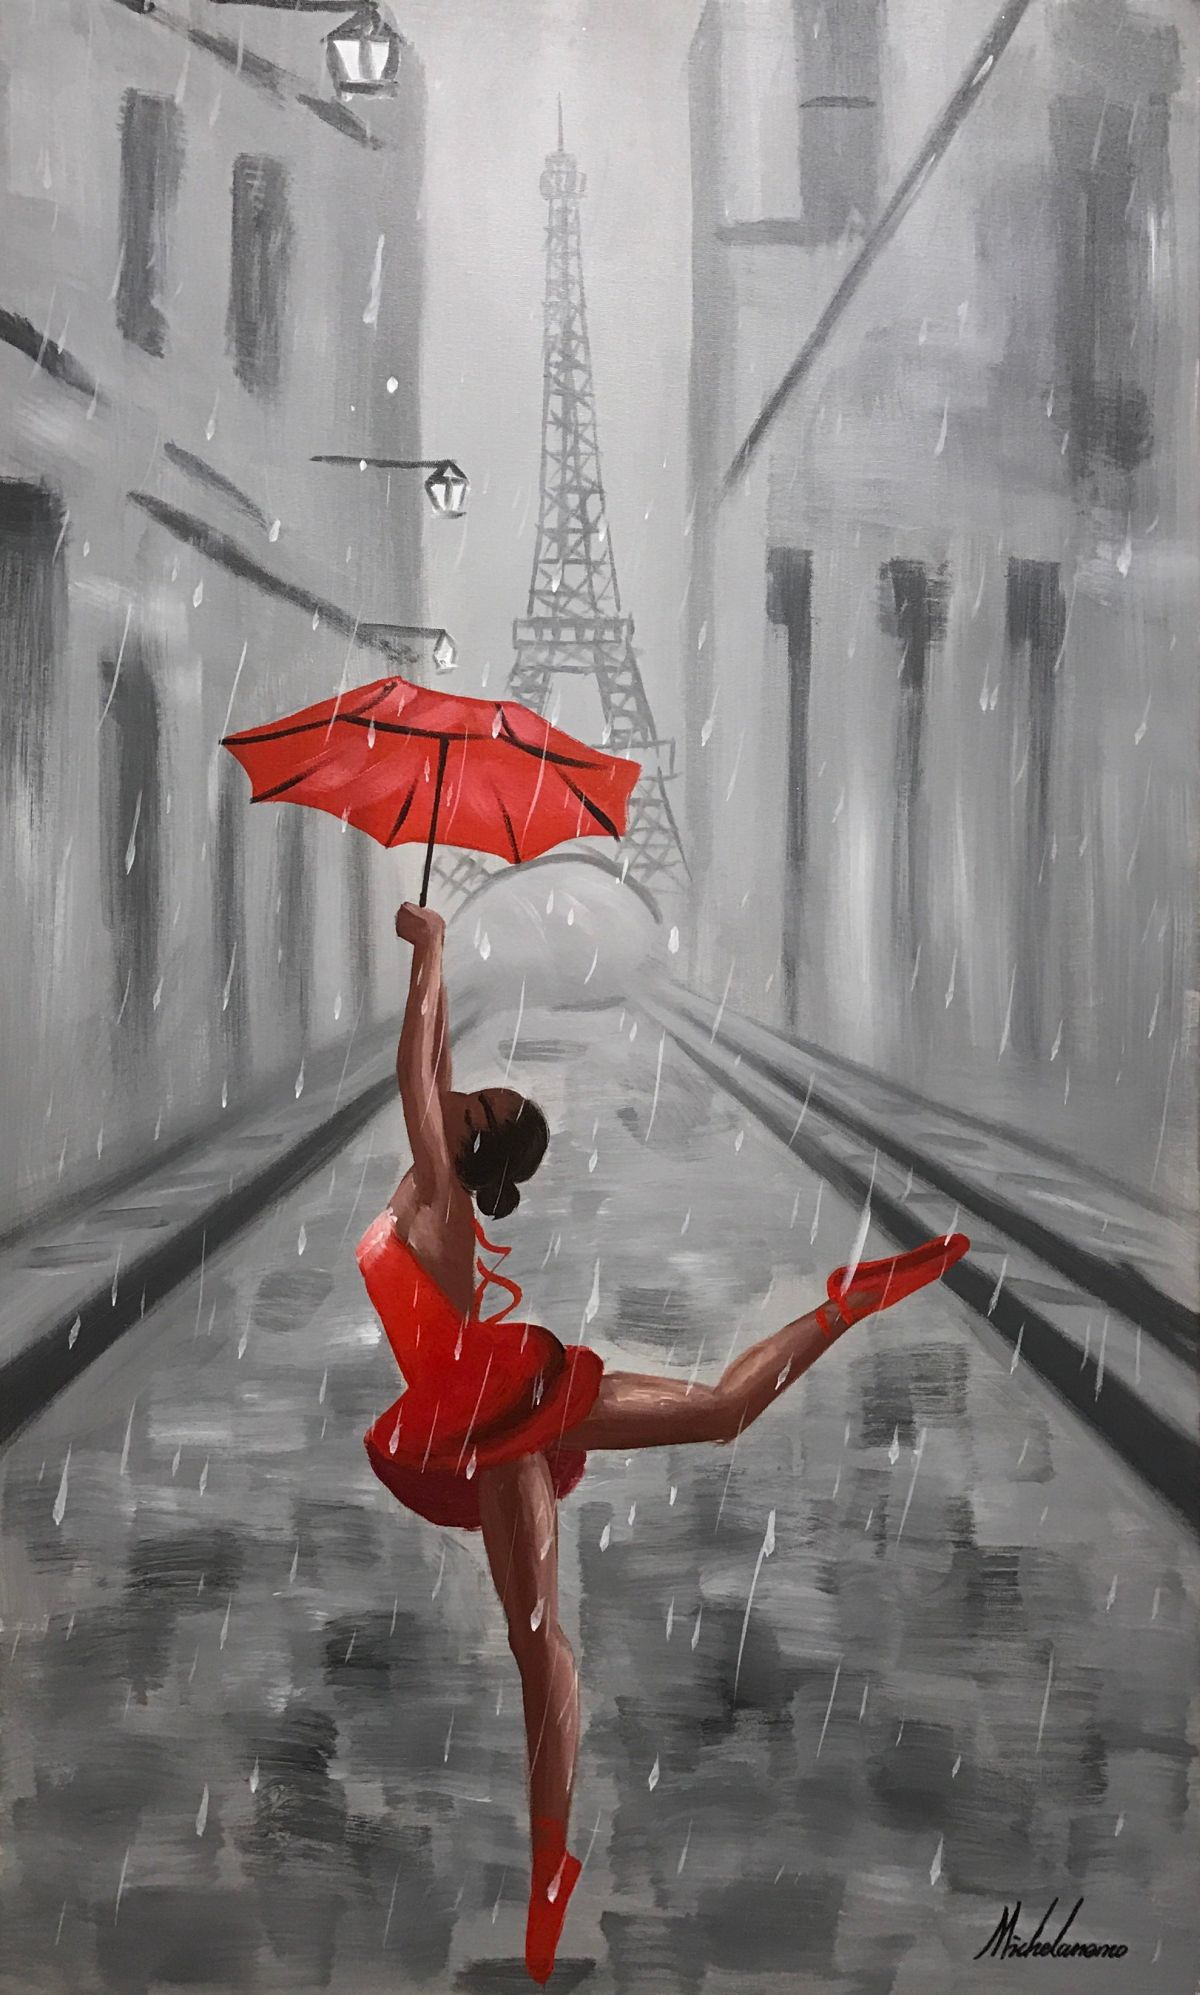 dancing in the rain art store house art paintings. Black Bedroom Furniture Sets. Home Design Ideas